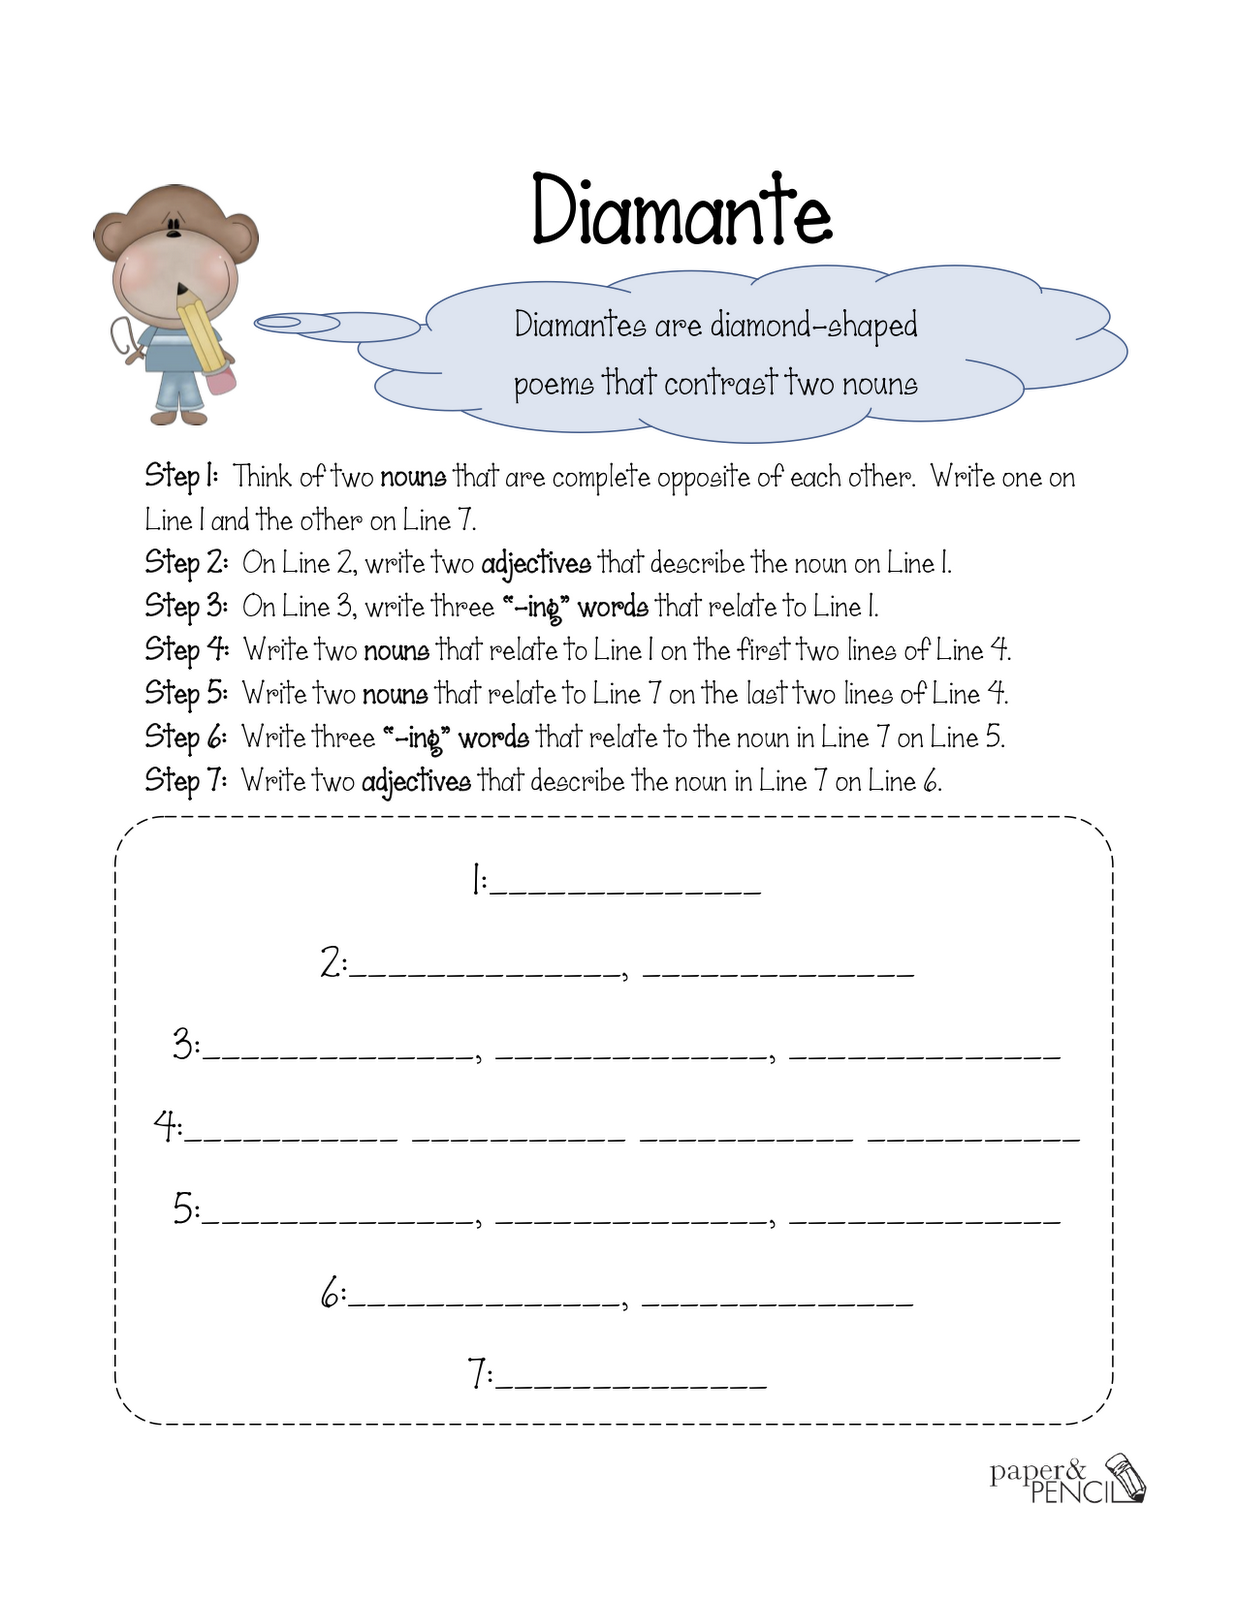 Diamante Poem Printable  Enjoy And Please Follow Me Oh And I